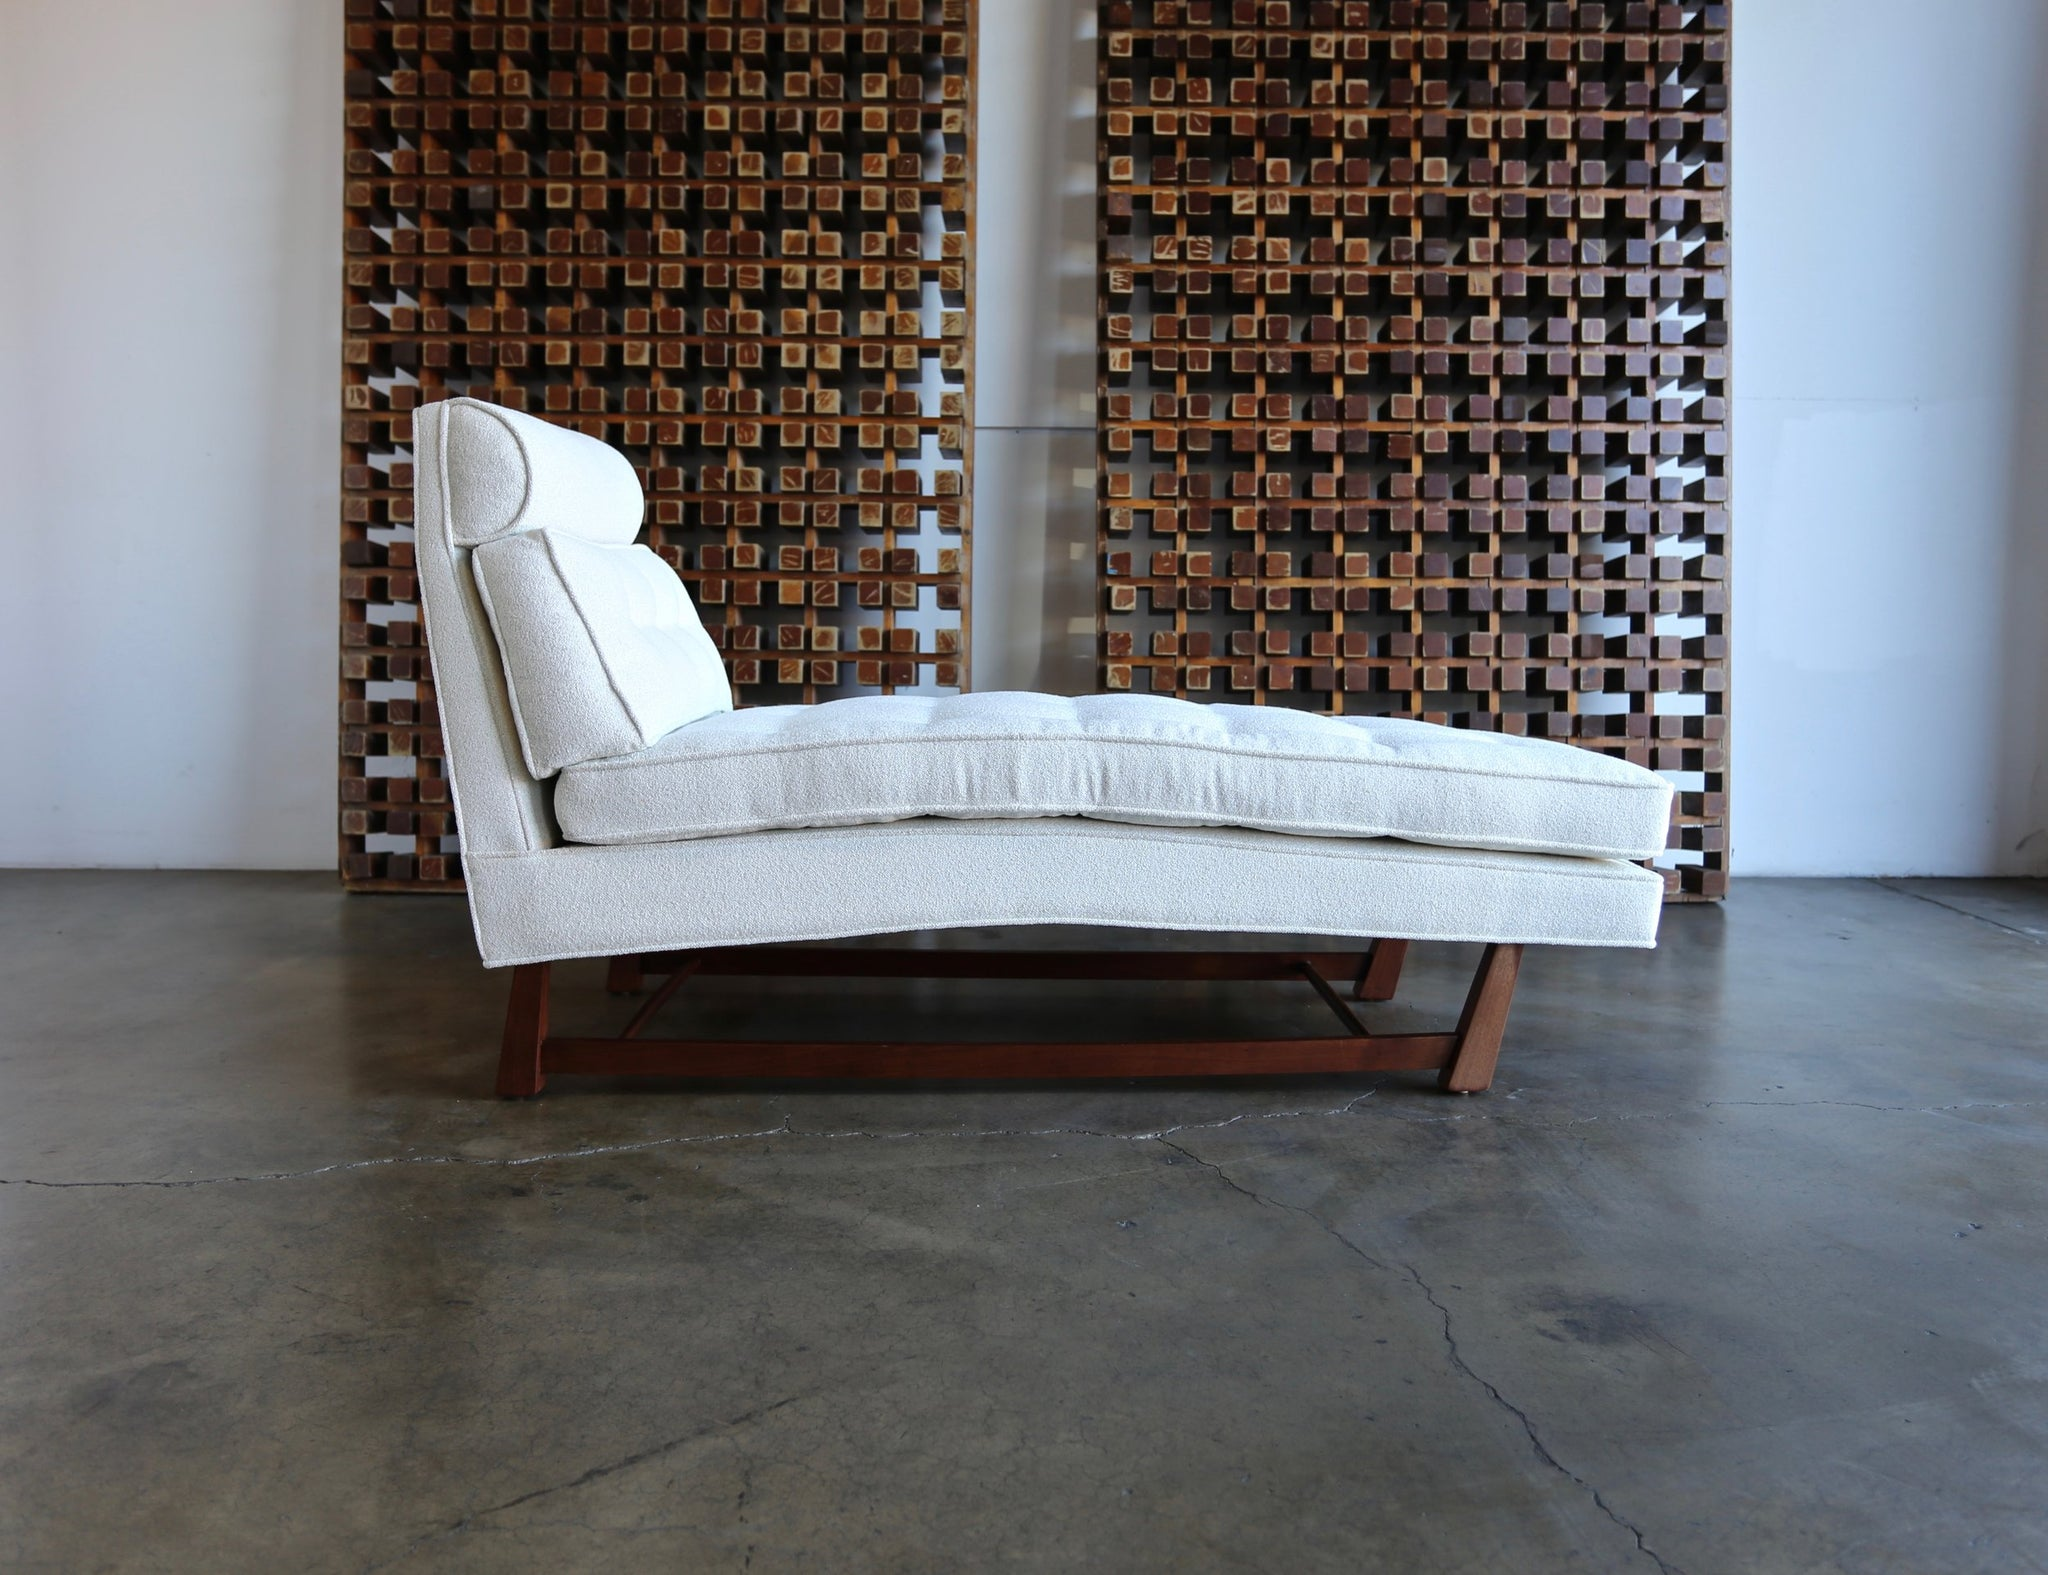 = SOLD = Rare Chaise Longue by Edward Wormley for Dunbar